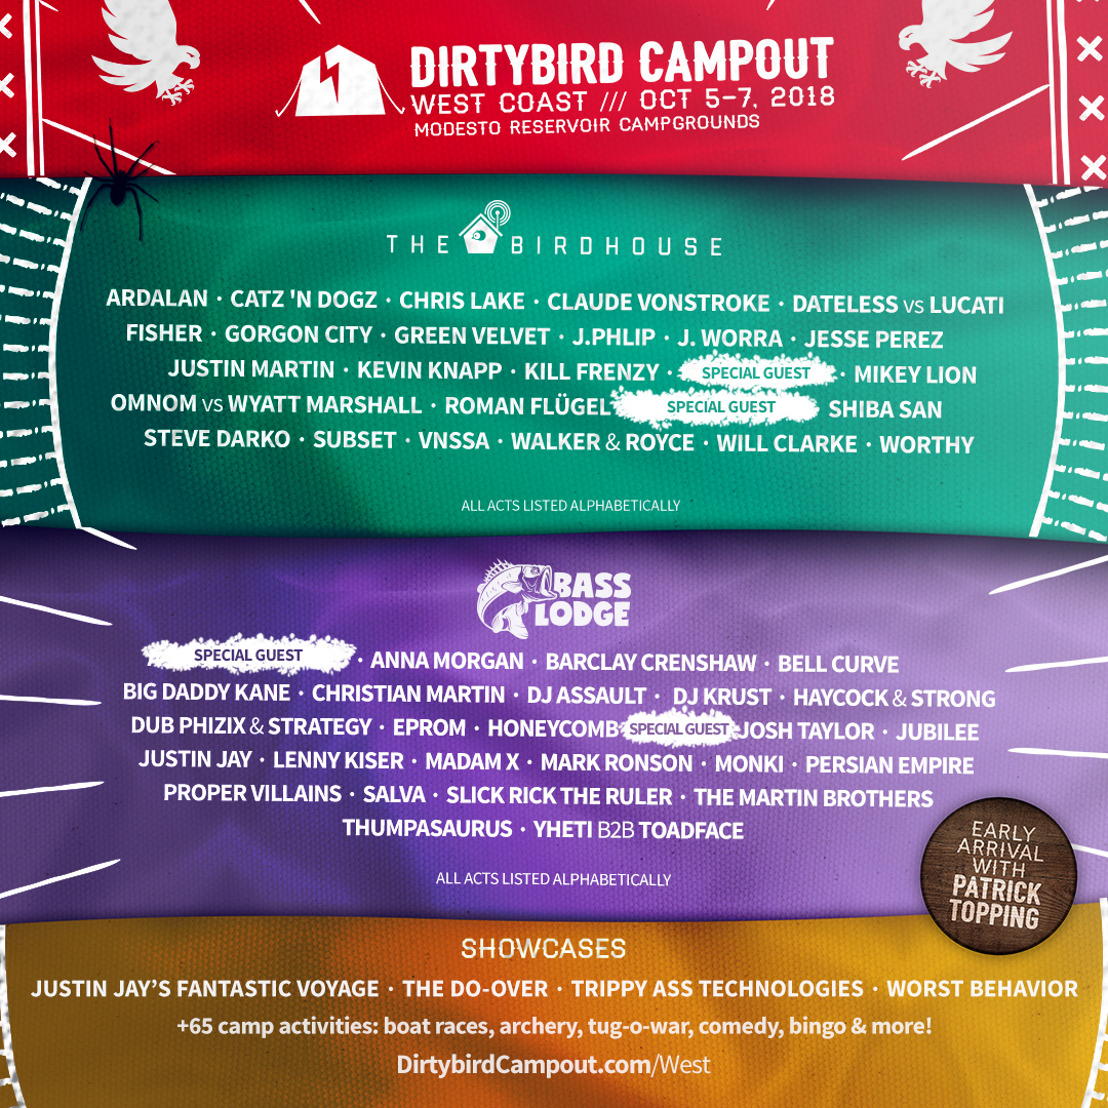 DIRTYBIRD Campout Releases Lineup for 2018 West Coast Event